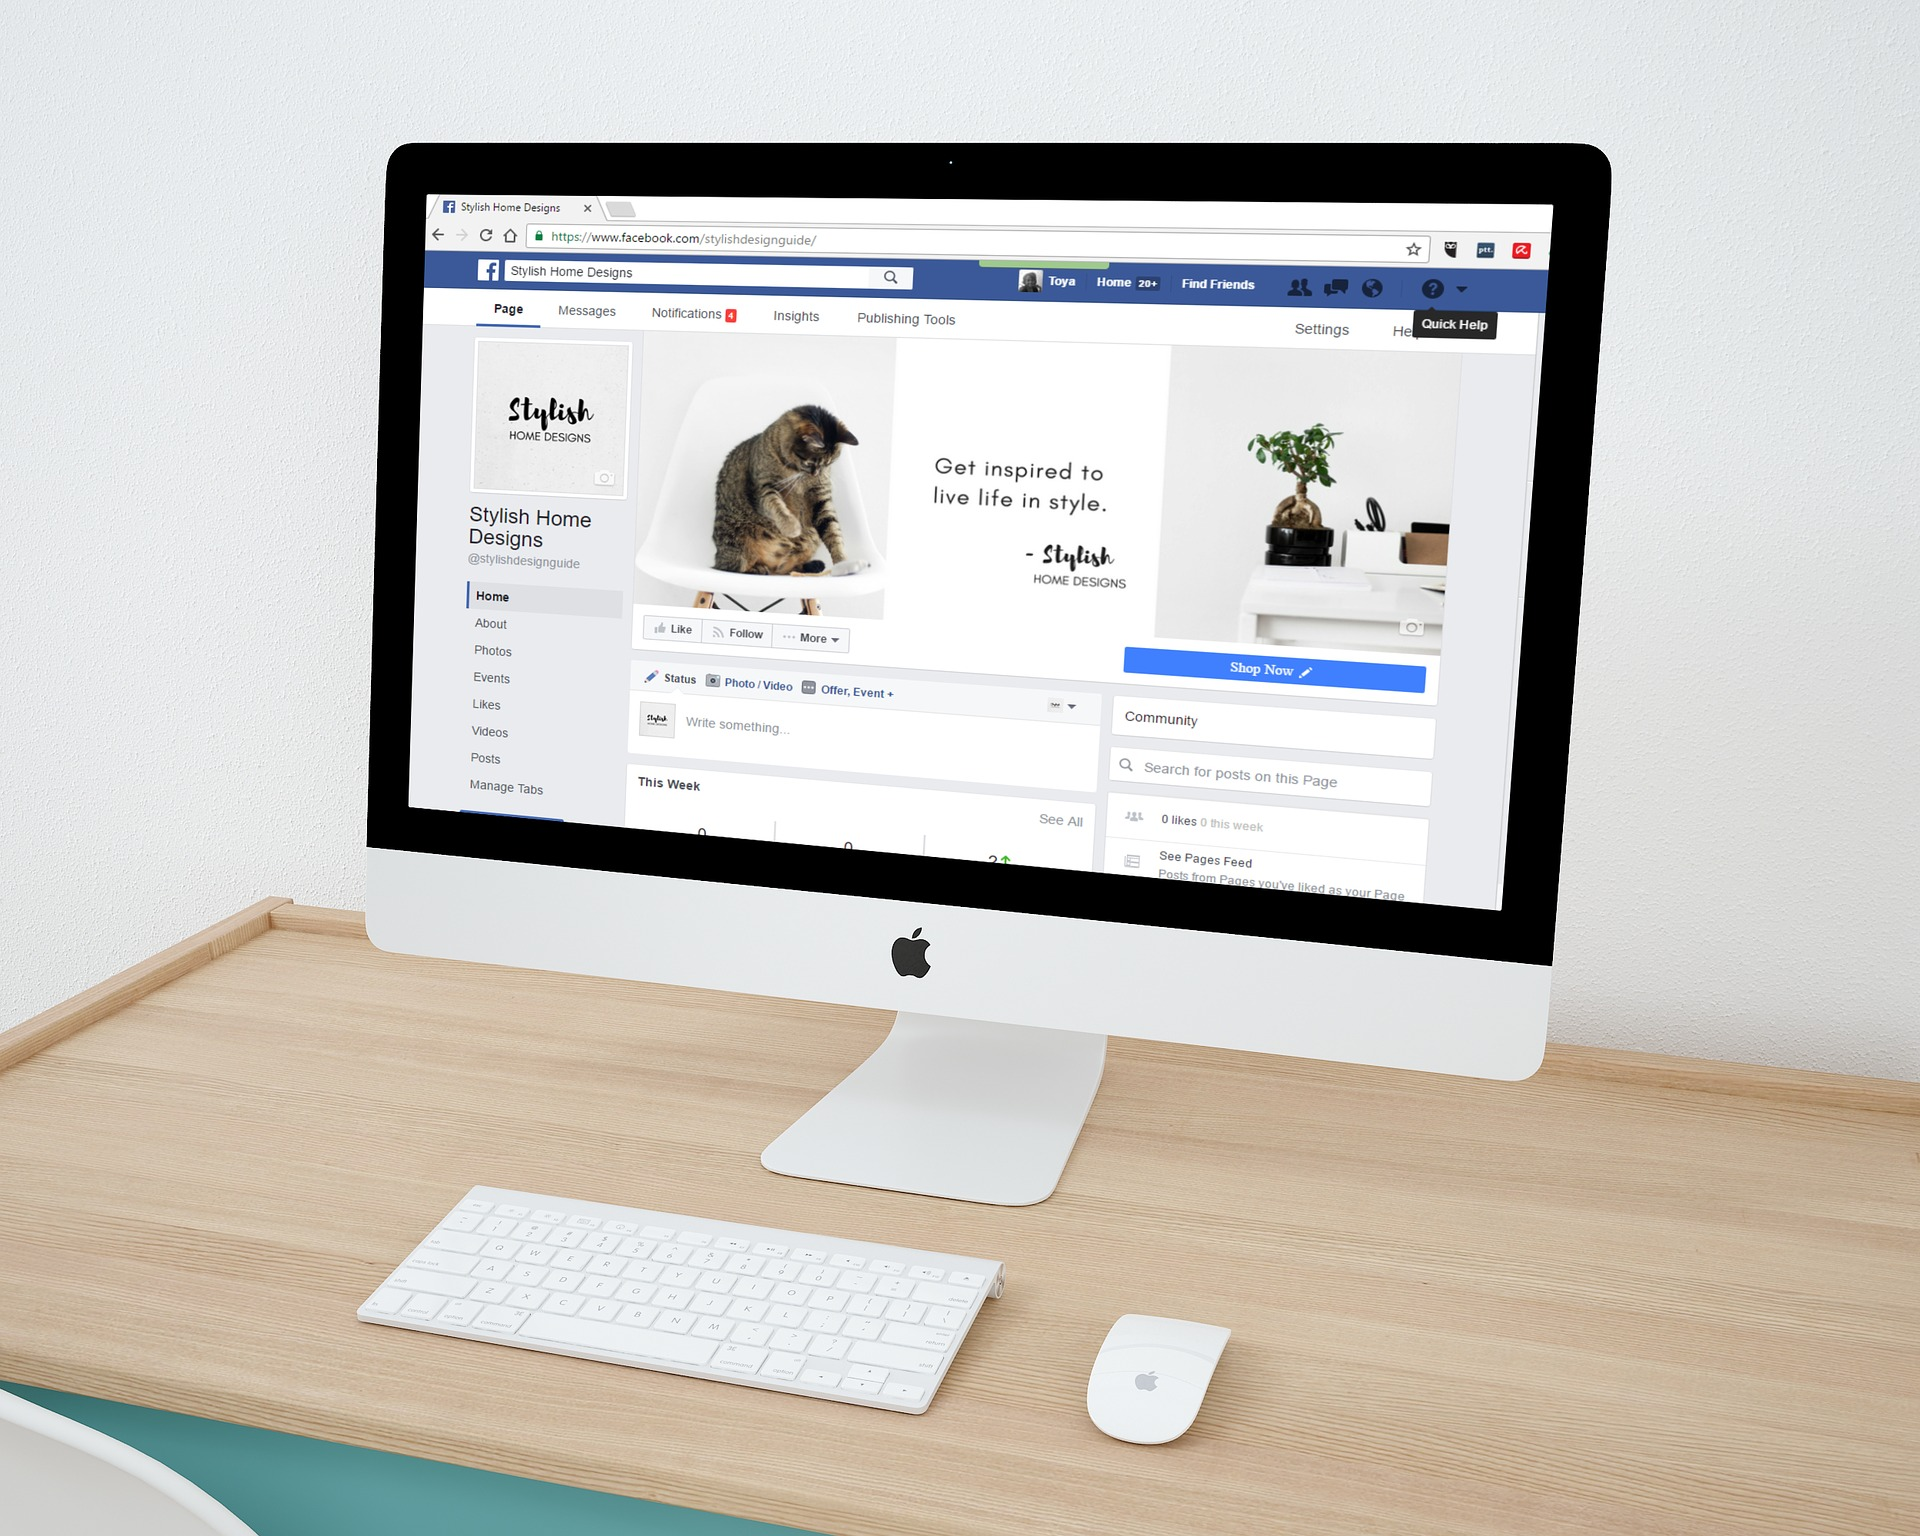 Should My Small Business Have A Facebook Page?